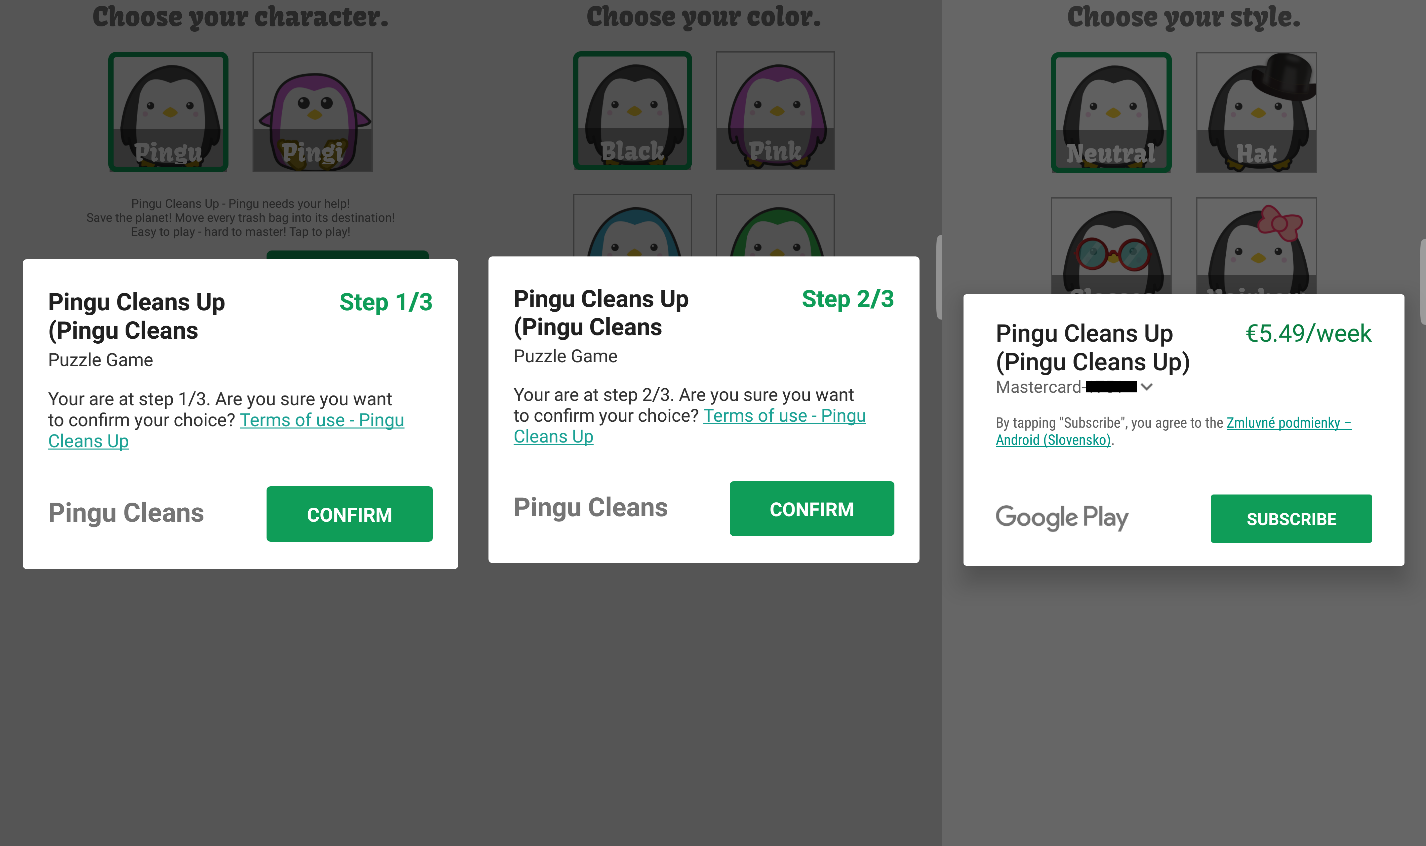 - Figure3 - Pingu Cleans Up game attempts to trick users into paid weekly subscription